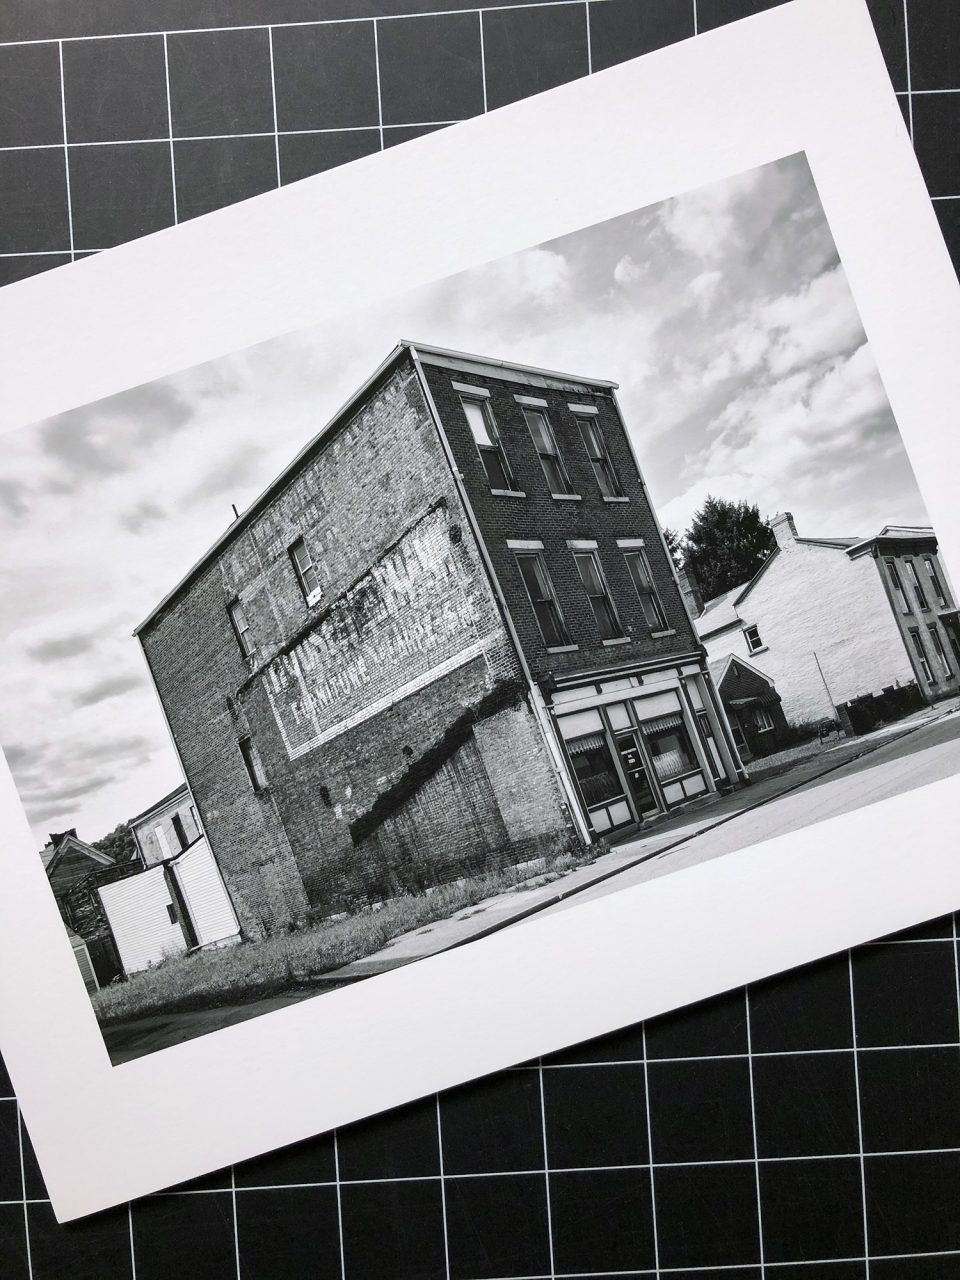 A black and white photograph printed on Arches 88 photo paper